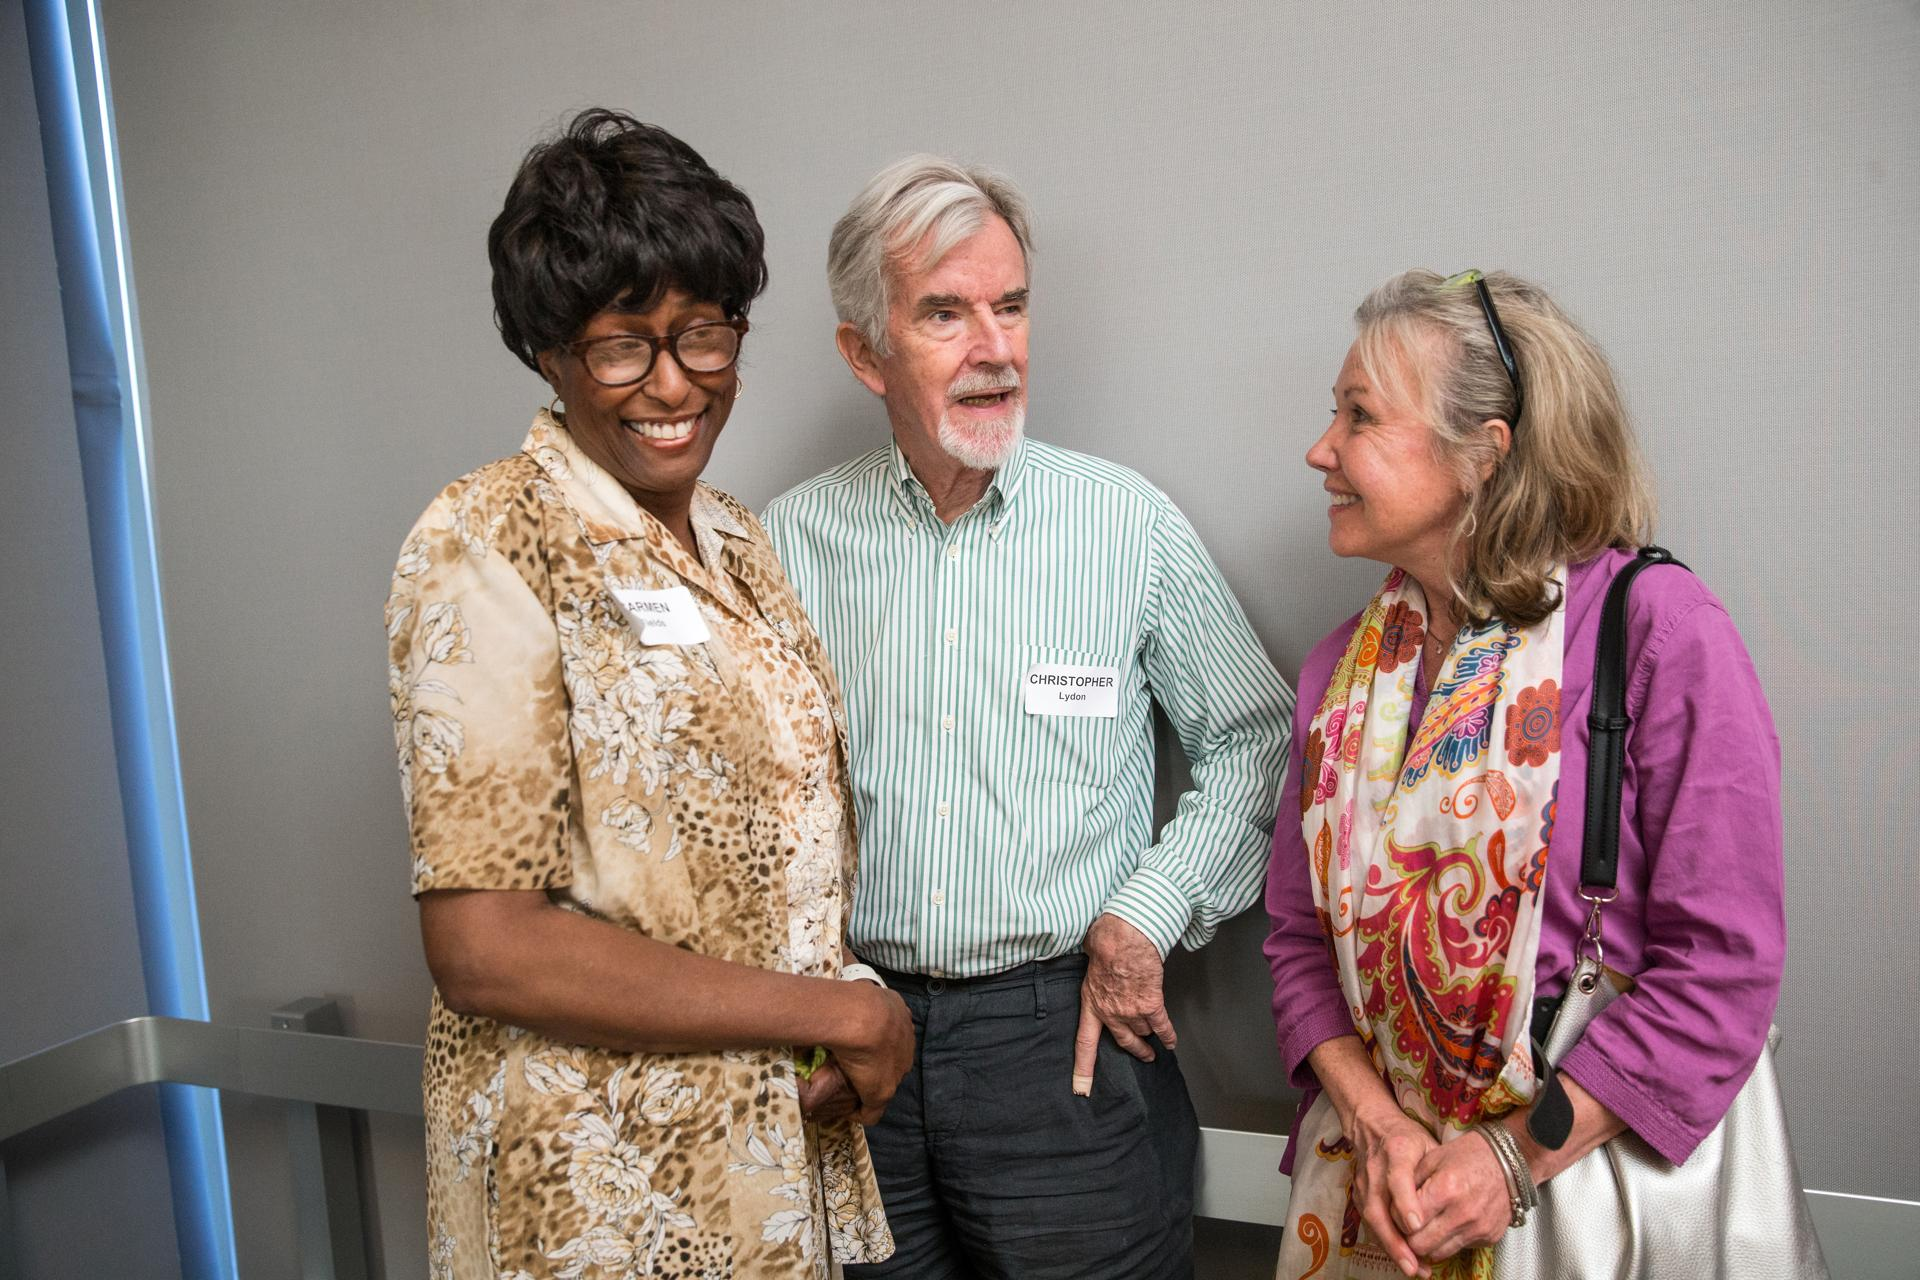 06/14/2017 BOSTON, MA L-R Carmen Fields (cq), Christopher Lyndon (cq) and Robin Parmelee (cq) attend a cocktail party at WGBH studios. (Aram Boghosian for The Boston Globe)